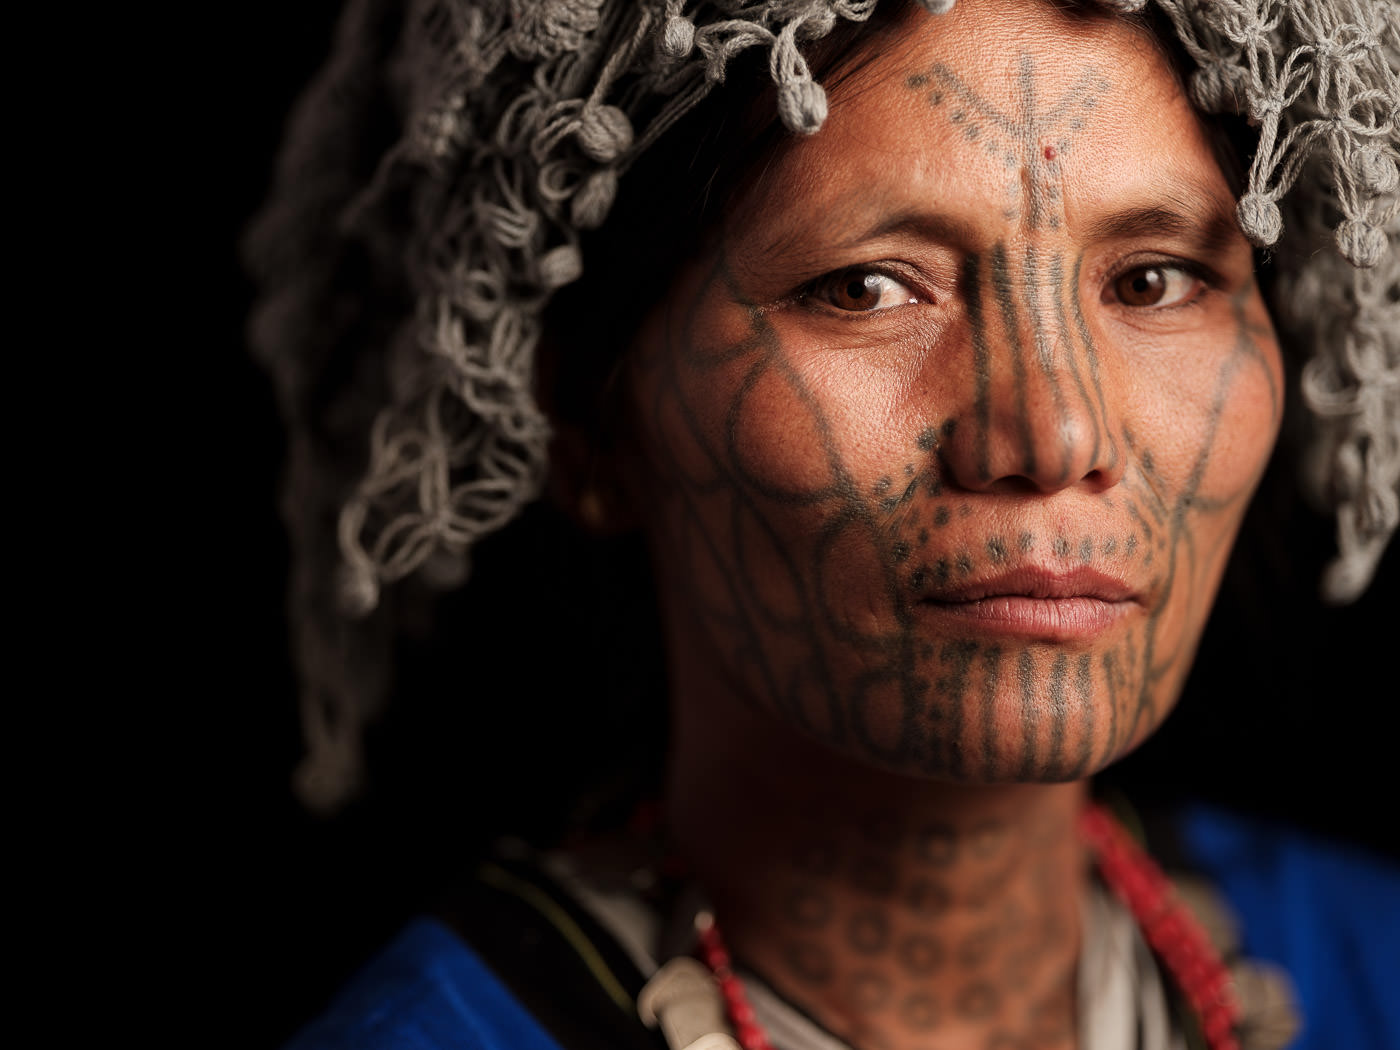 Mun Chin Woman Tattoo - Myanmar